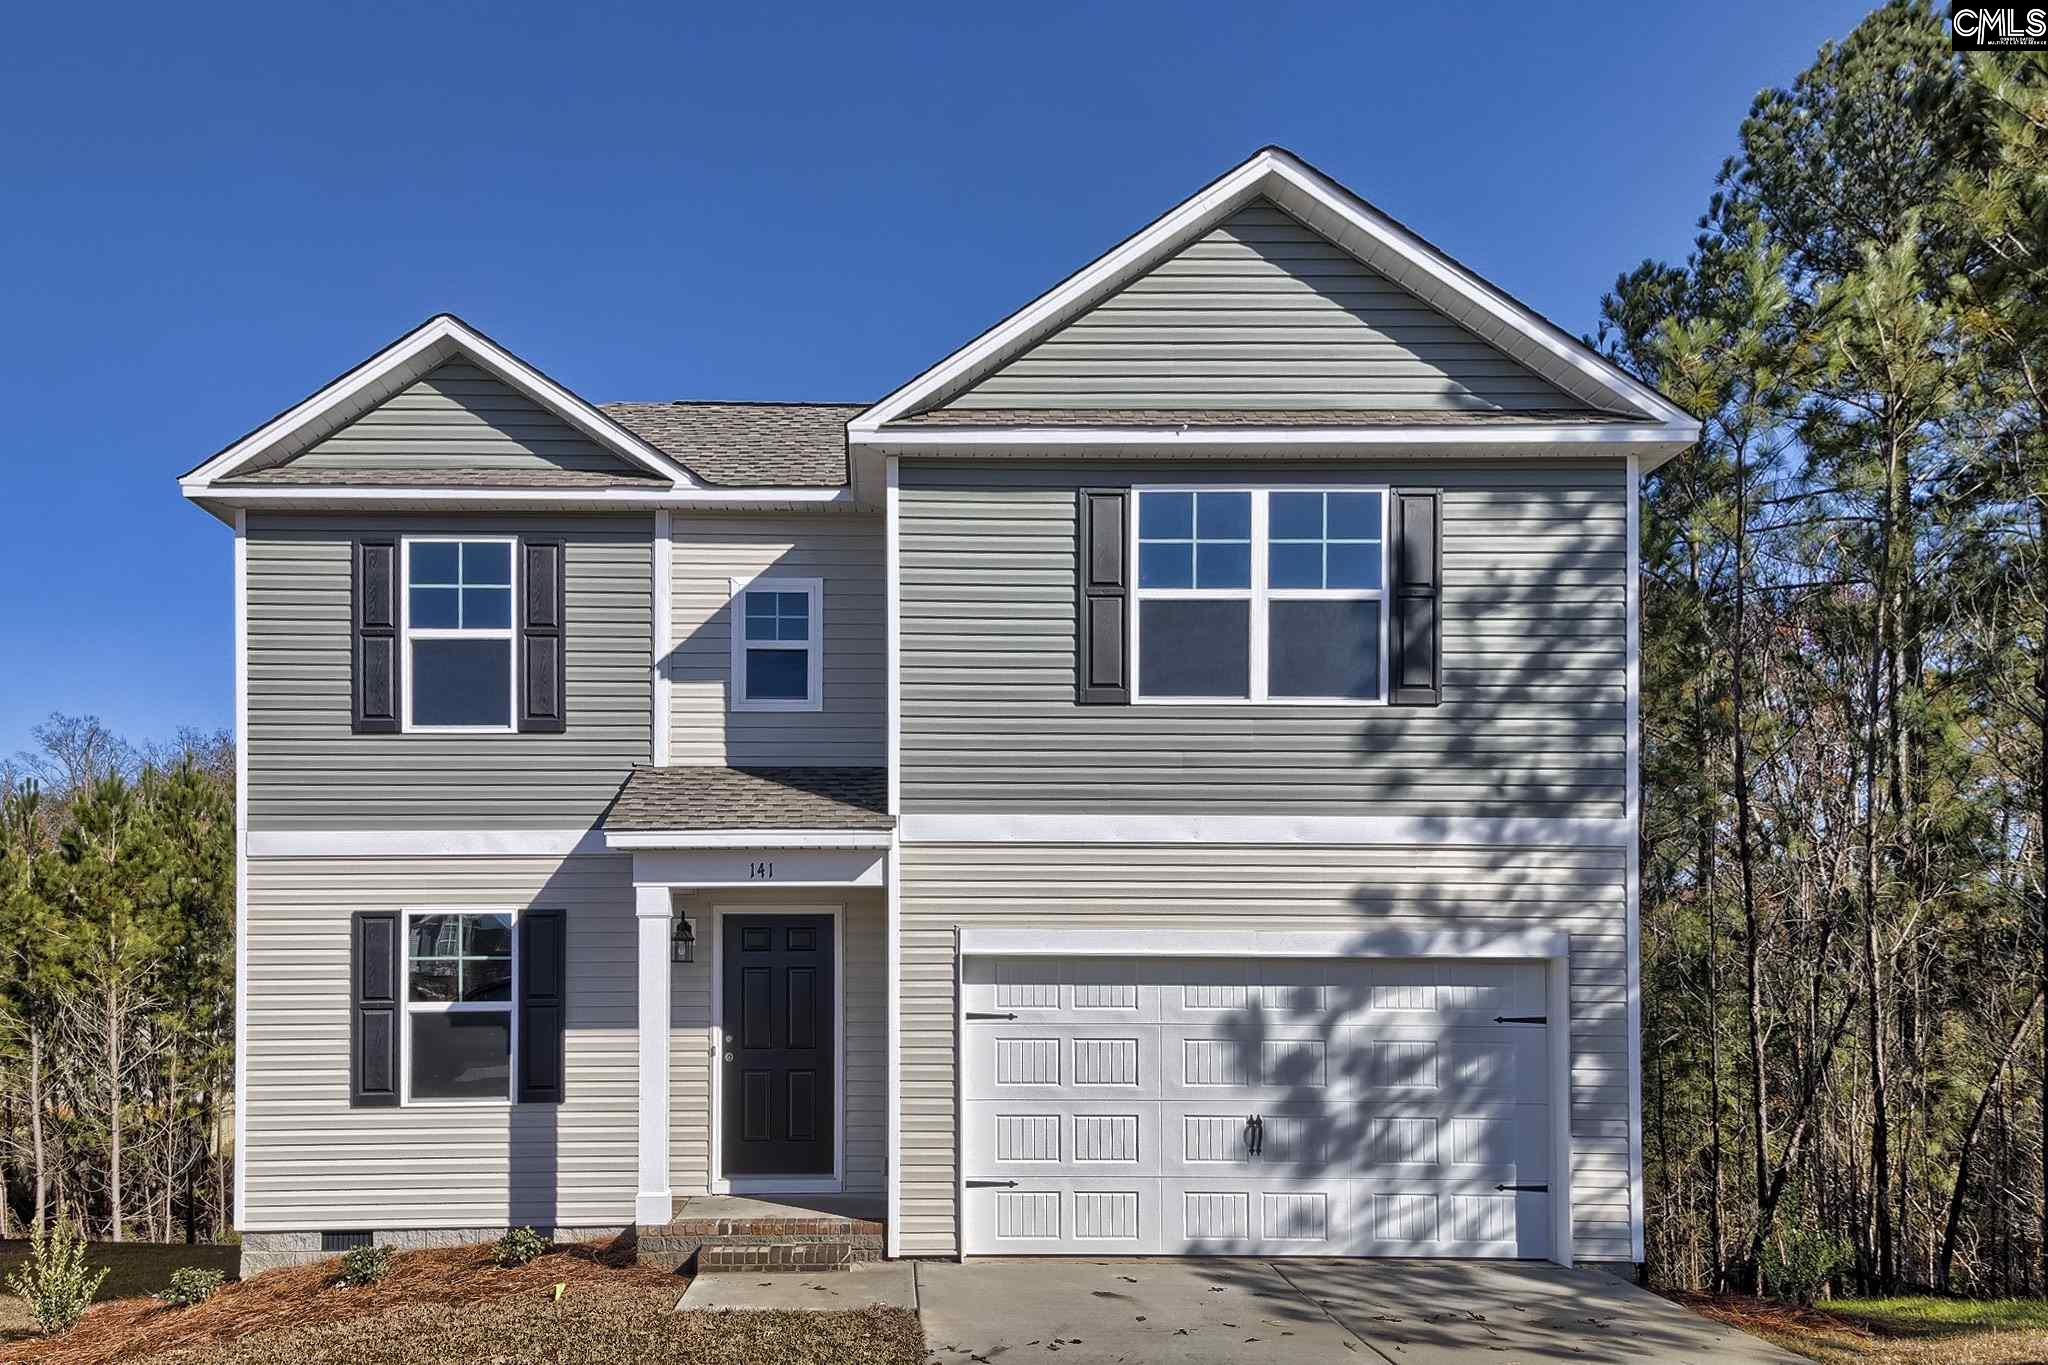 141 Cascade Lexington, SC 29072